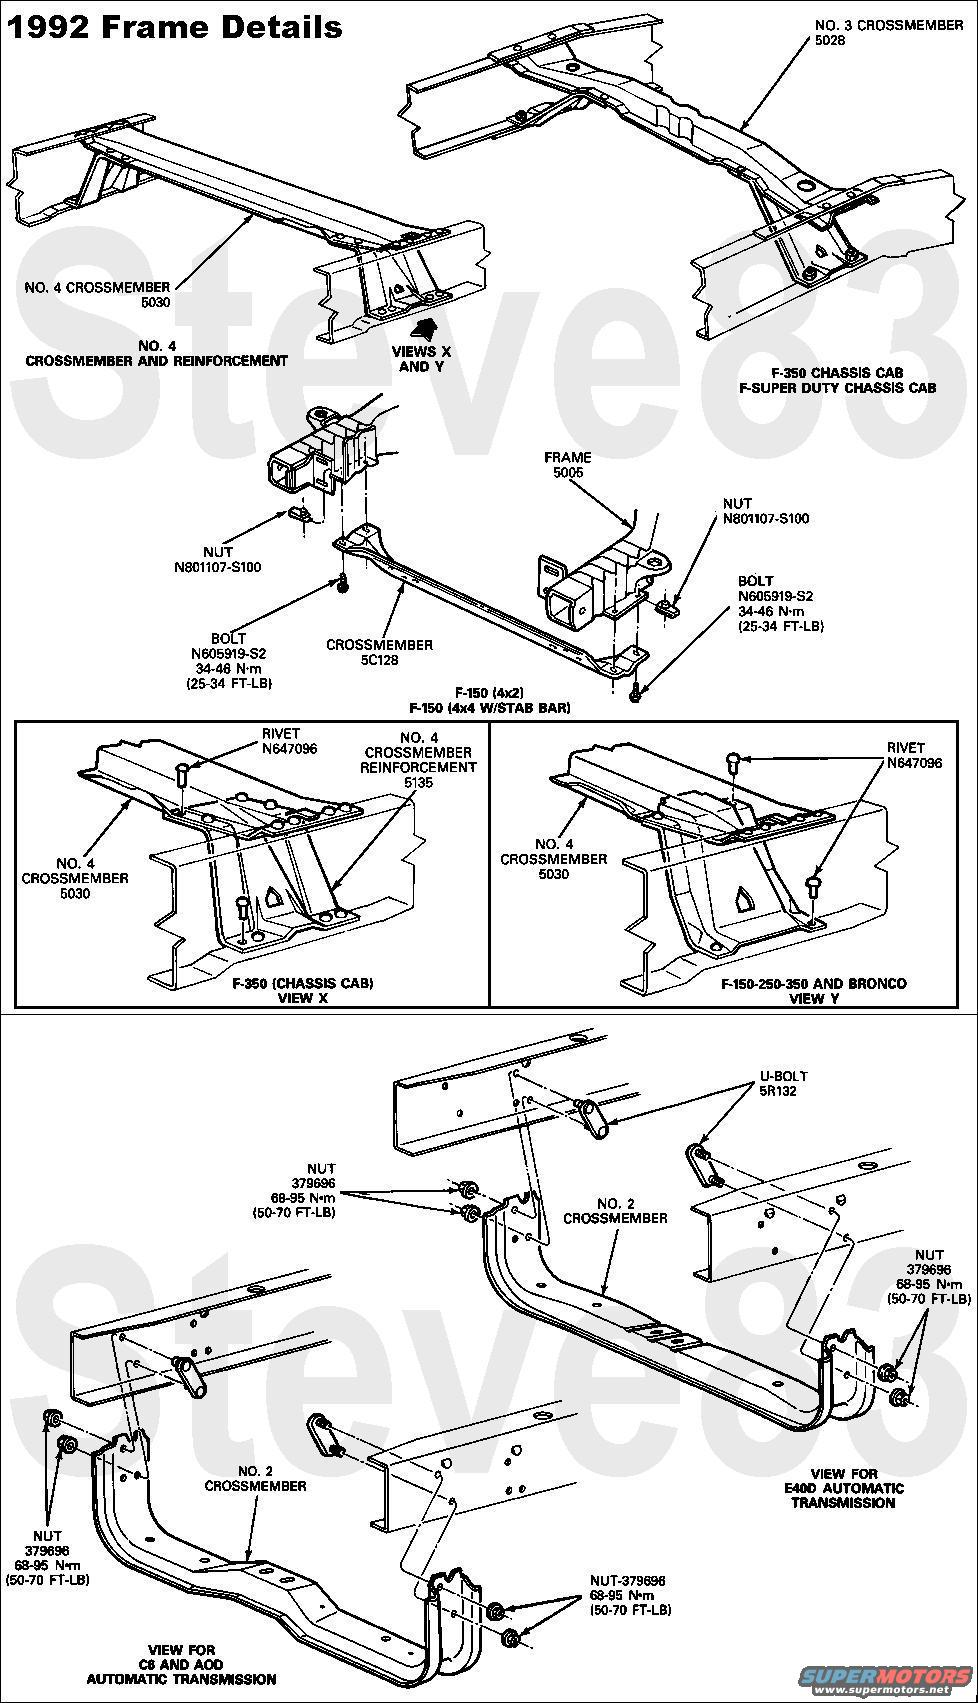 1980 Ford Bronco Frame Body Part Question Forum 92 Other Years Similar Exc For Front Crumple Zone Source By Steve83 Steve That Dirty Old Truck At Supermotorsnet